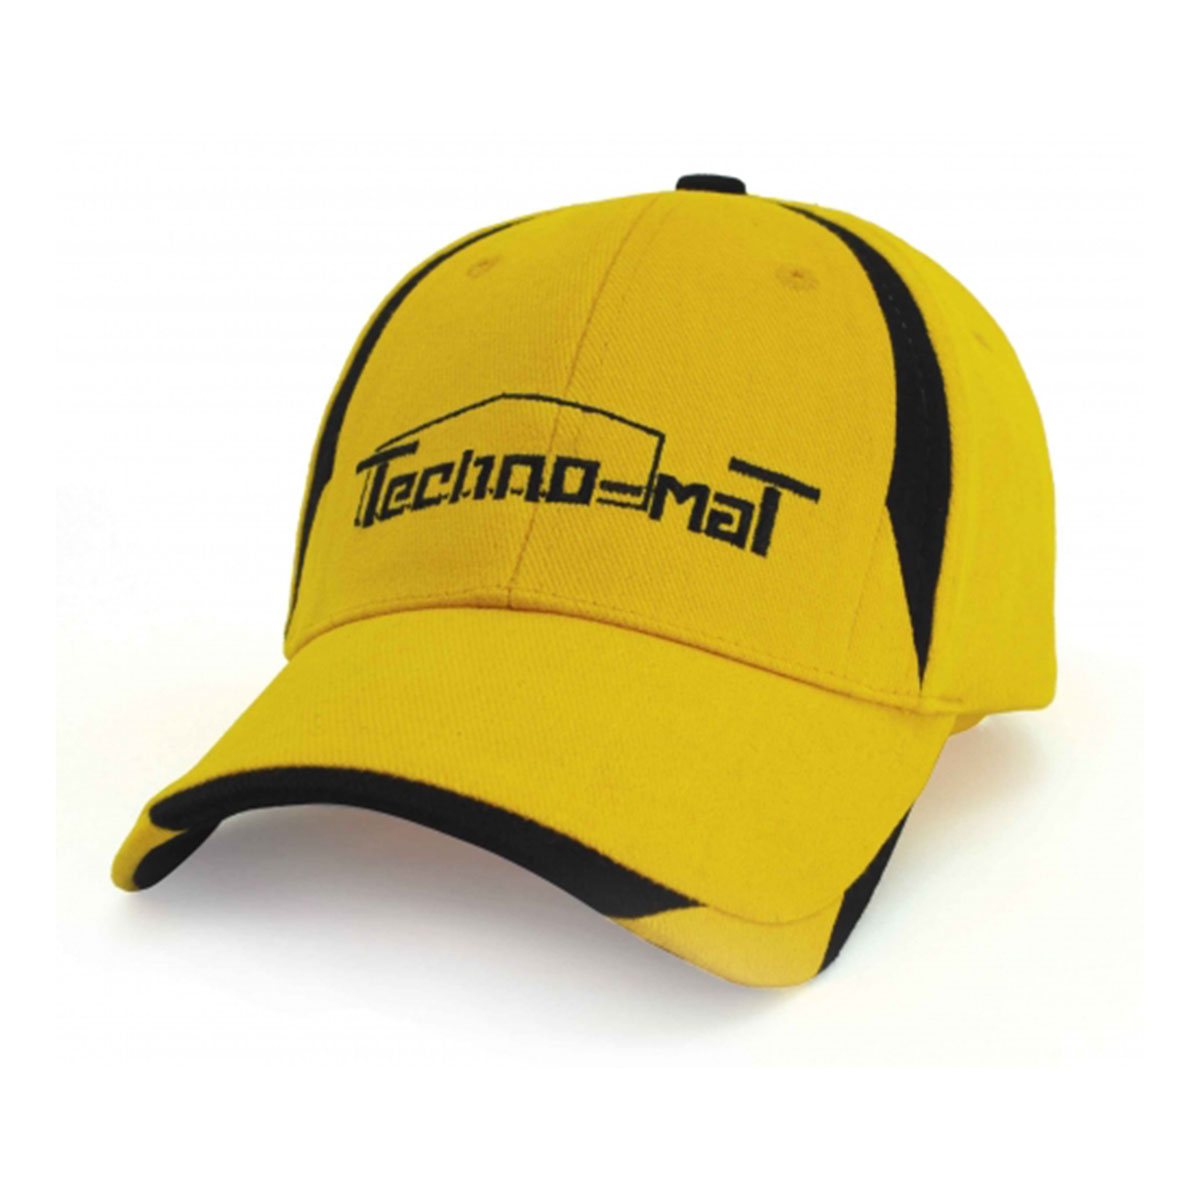 Nevada Cap-Aussie Gold / Black